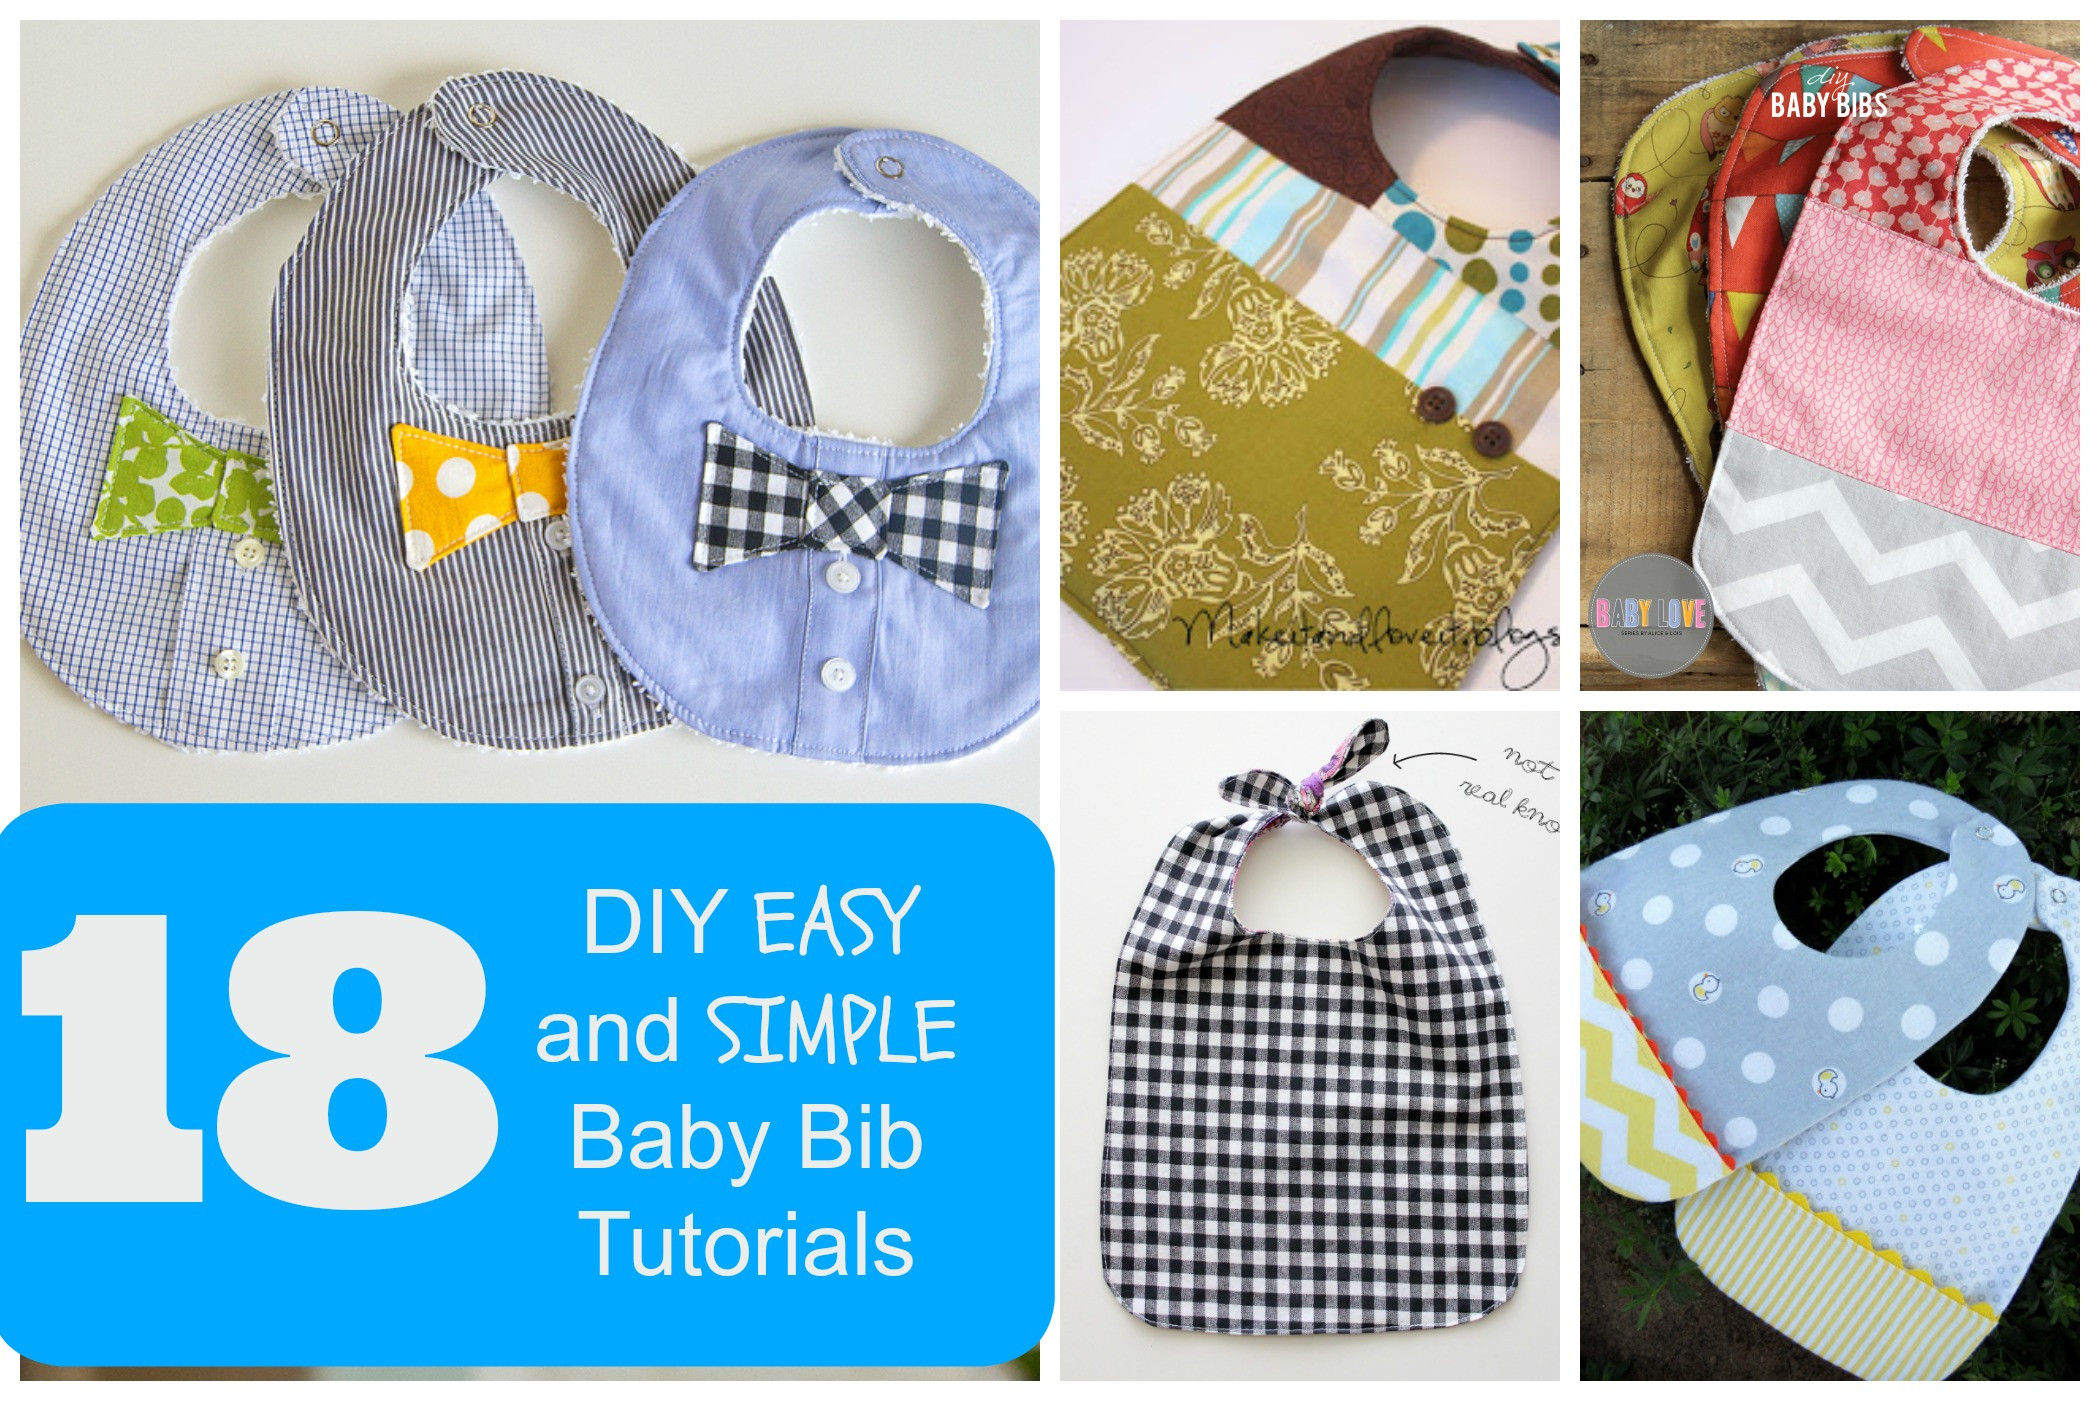 Best ideas about DIY Baby Bibs . Save or Pin 18 Simple Baby Bib Tutorials Now.